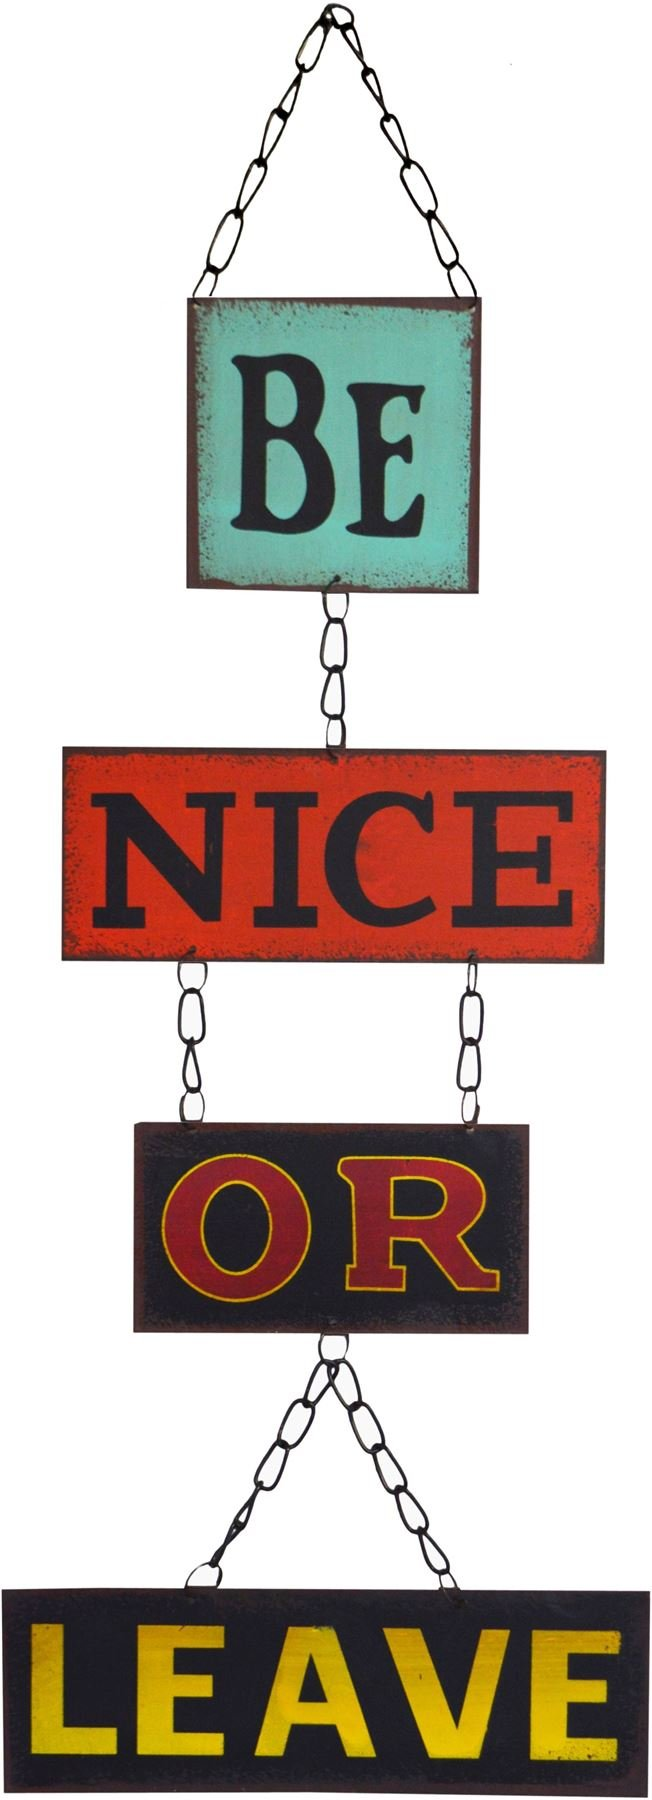 Nicola Spring Hanging Metal 4 Panel Wall Plaque - Be Nice Or Leave